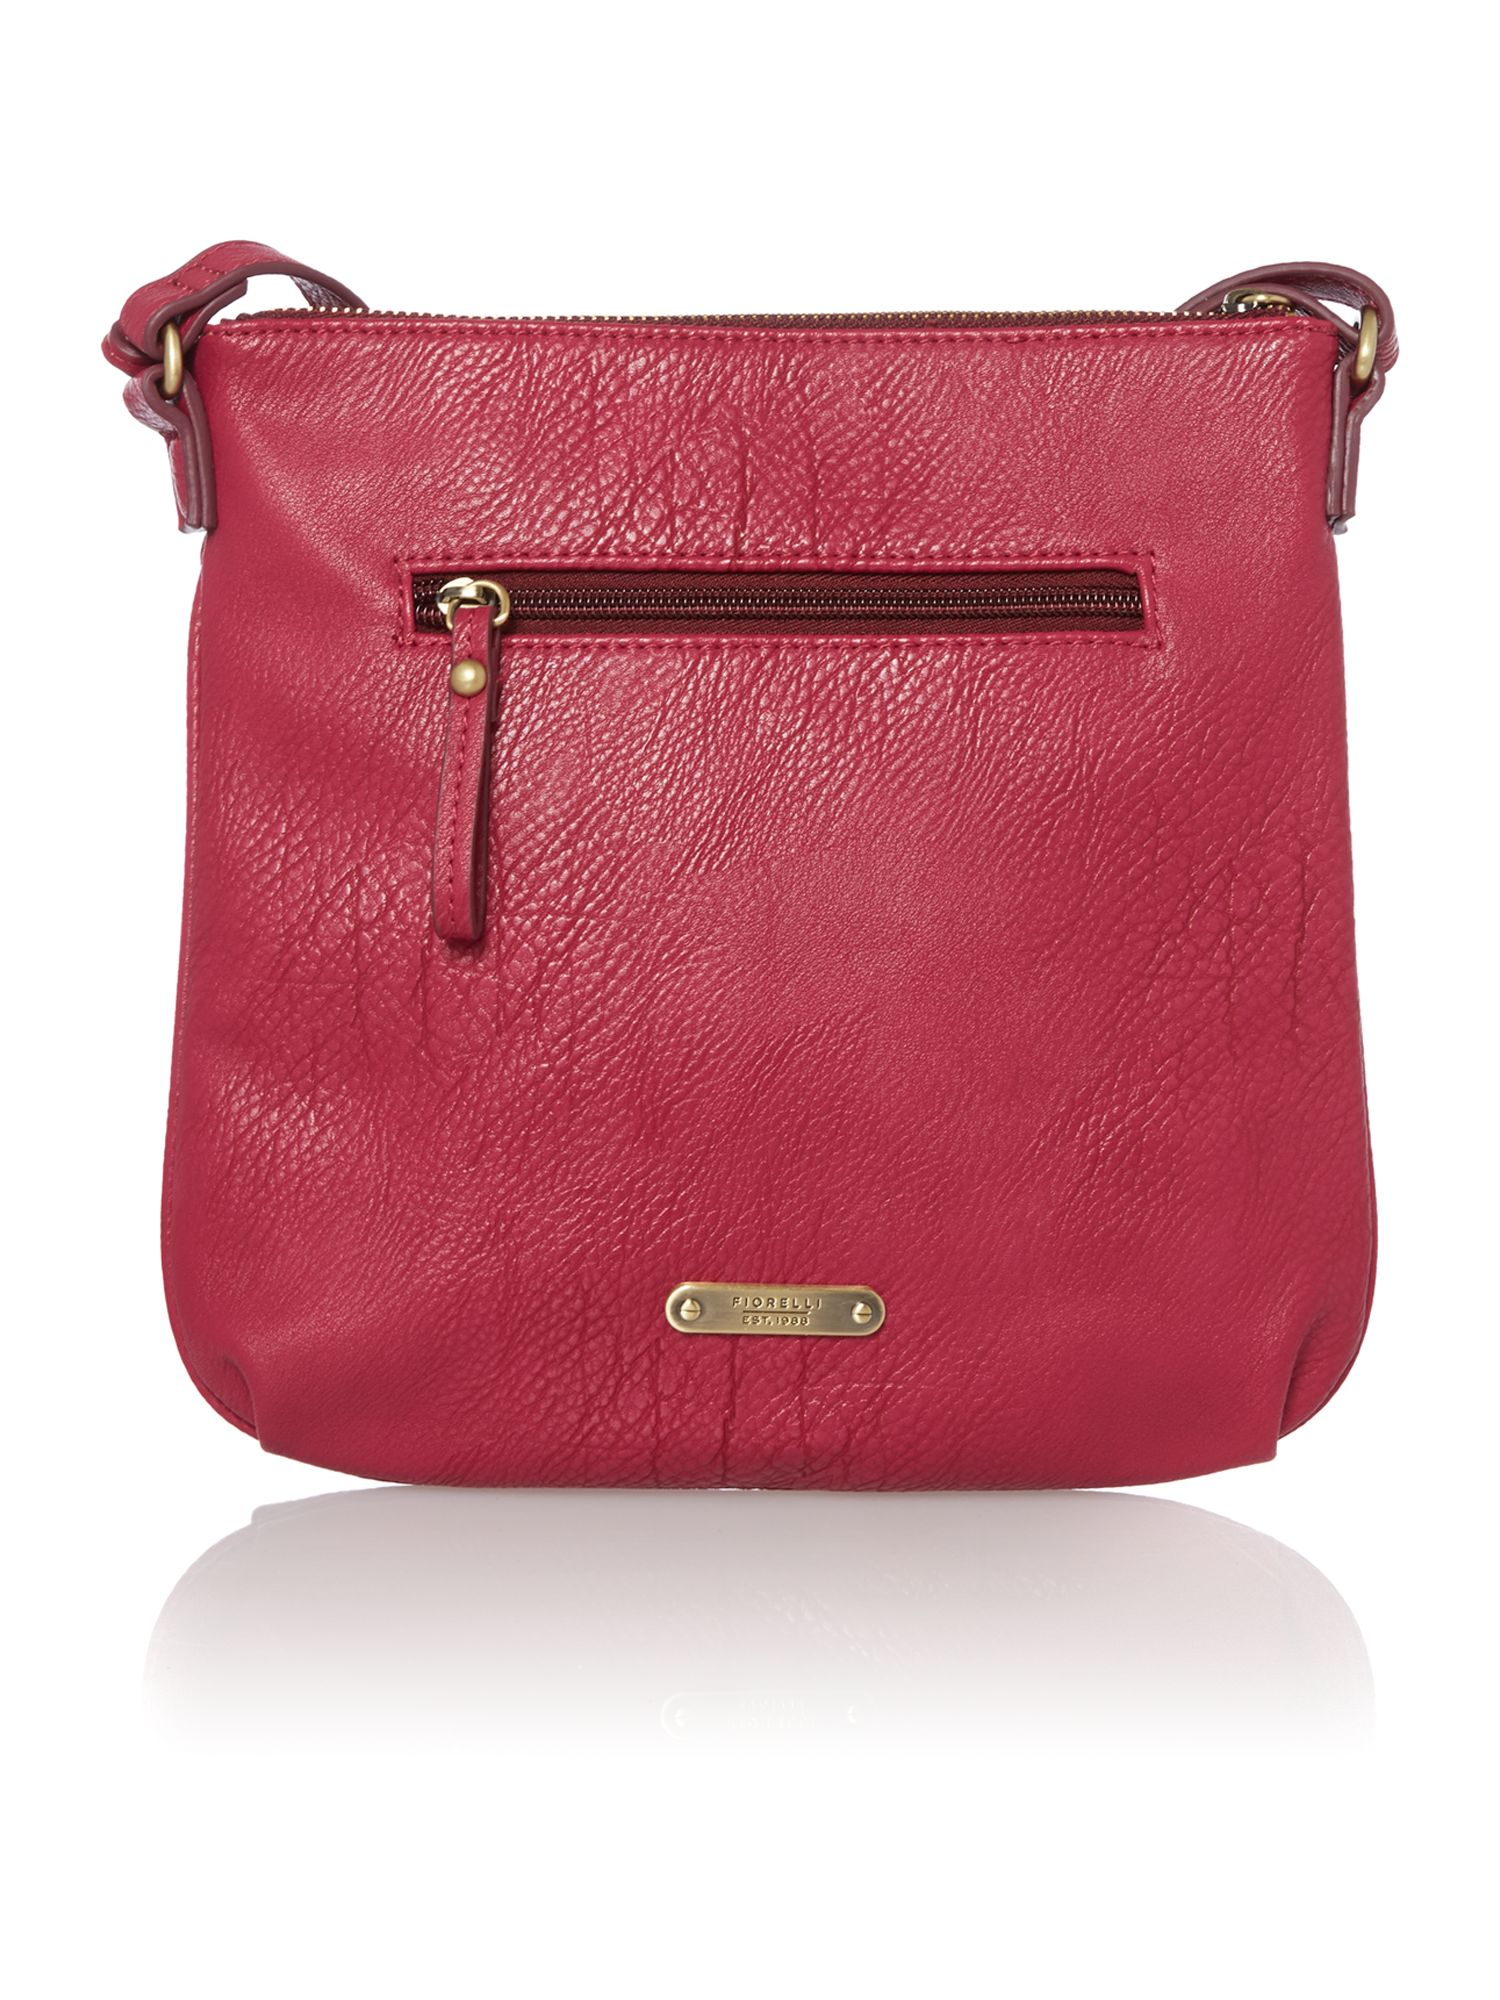 Phoebe pink cross body bag